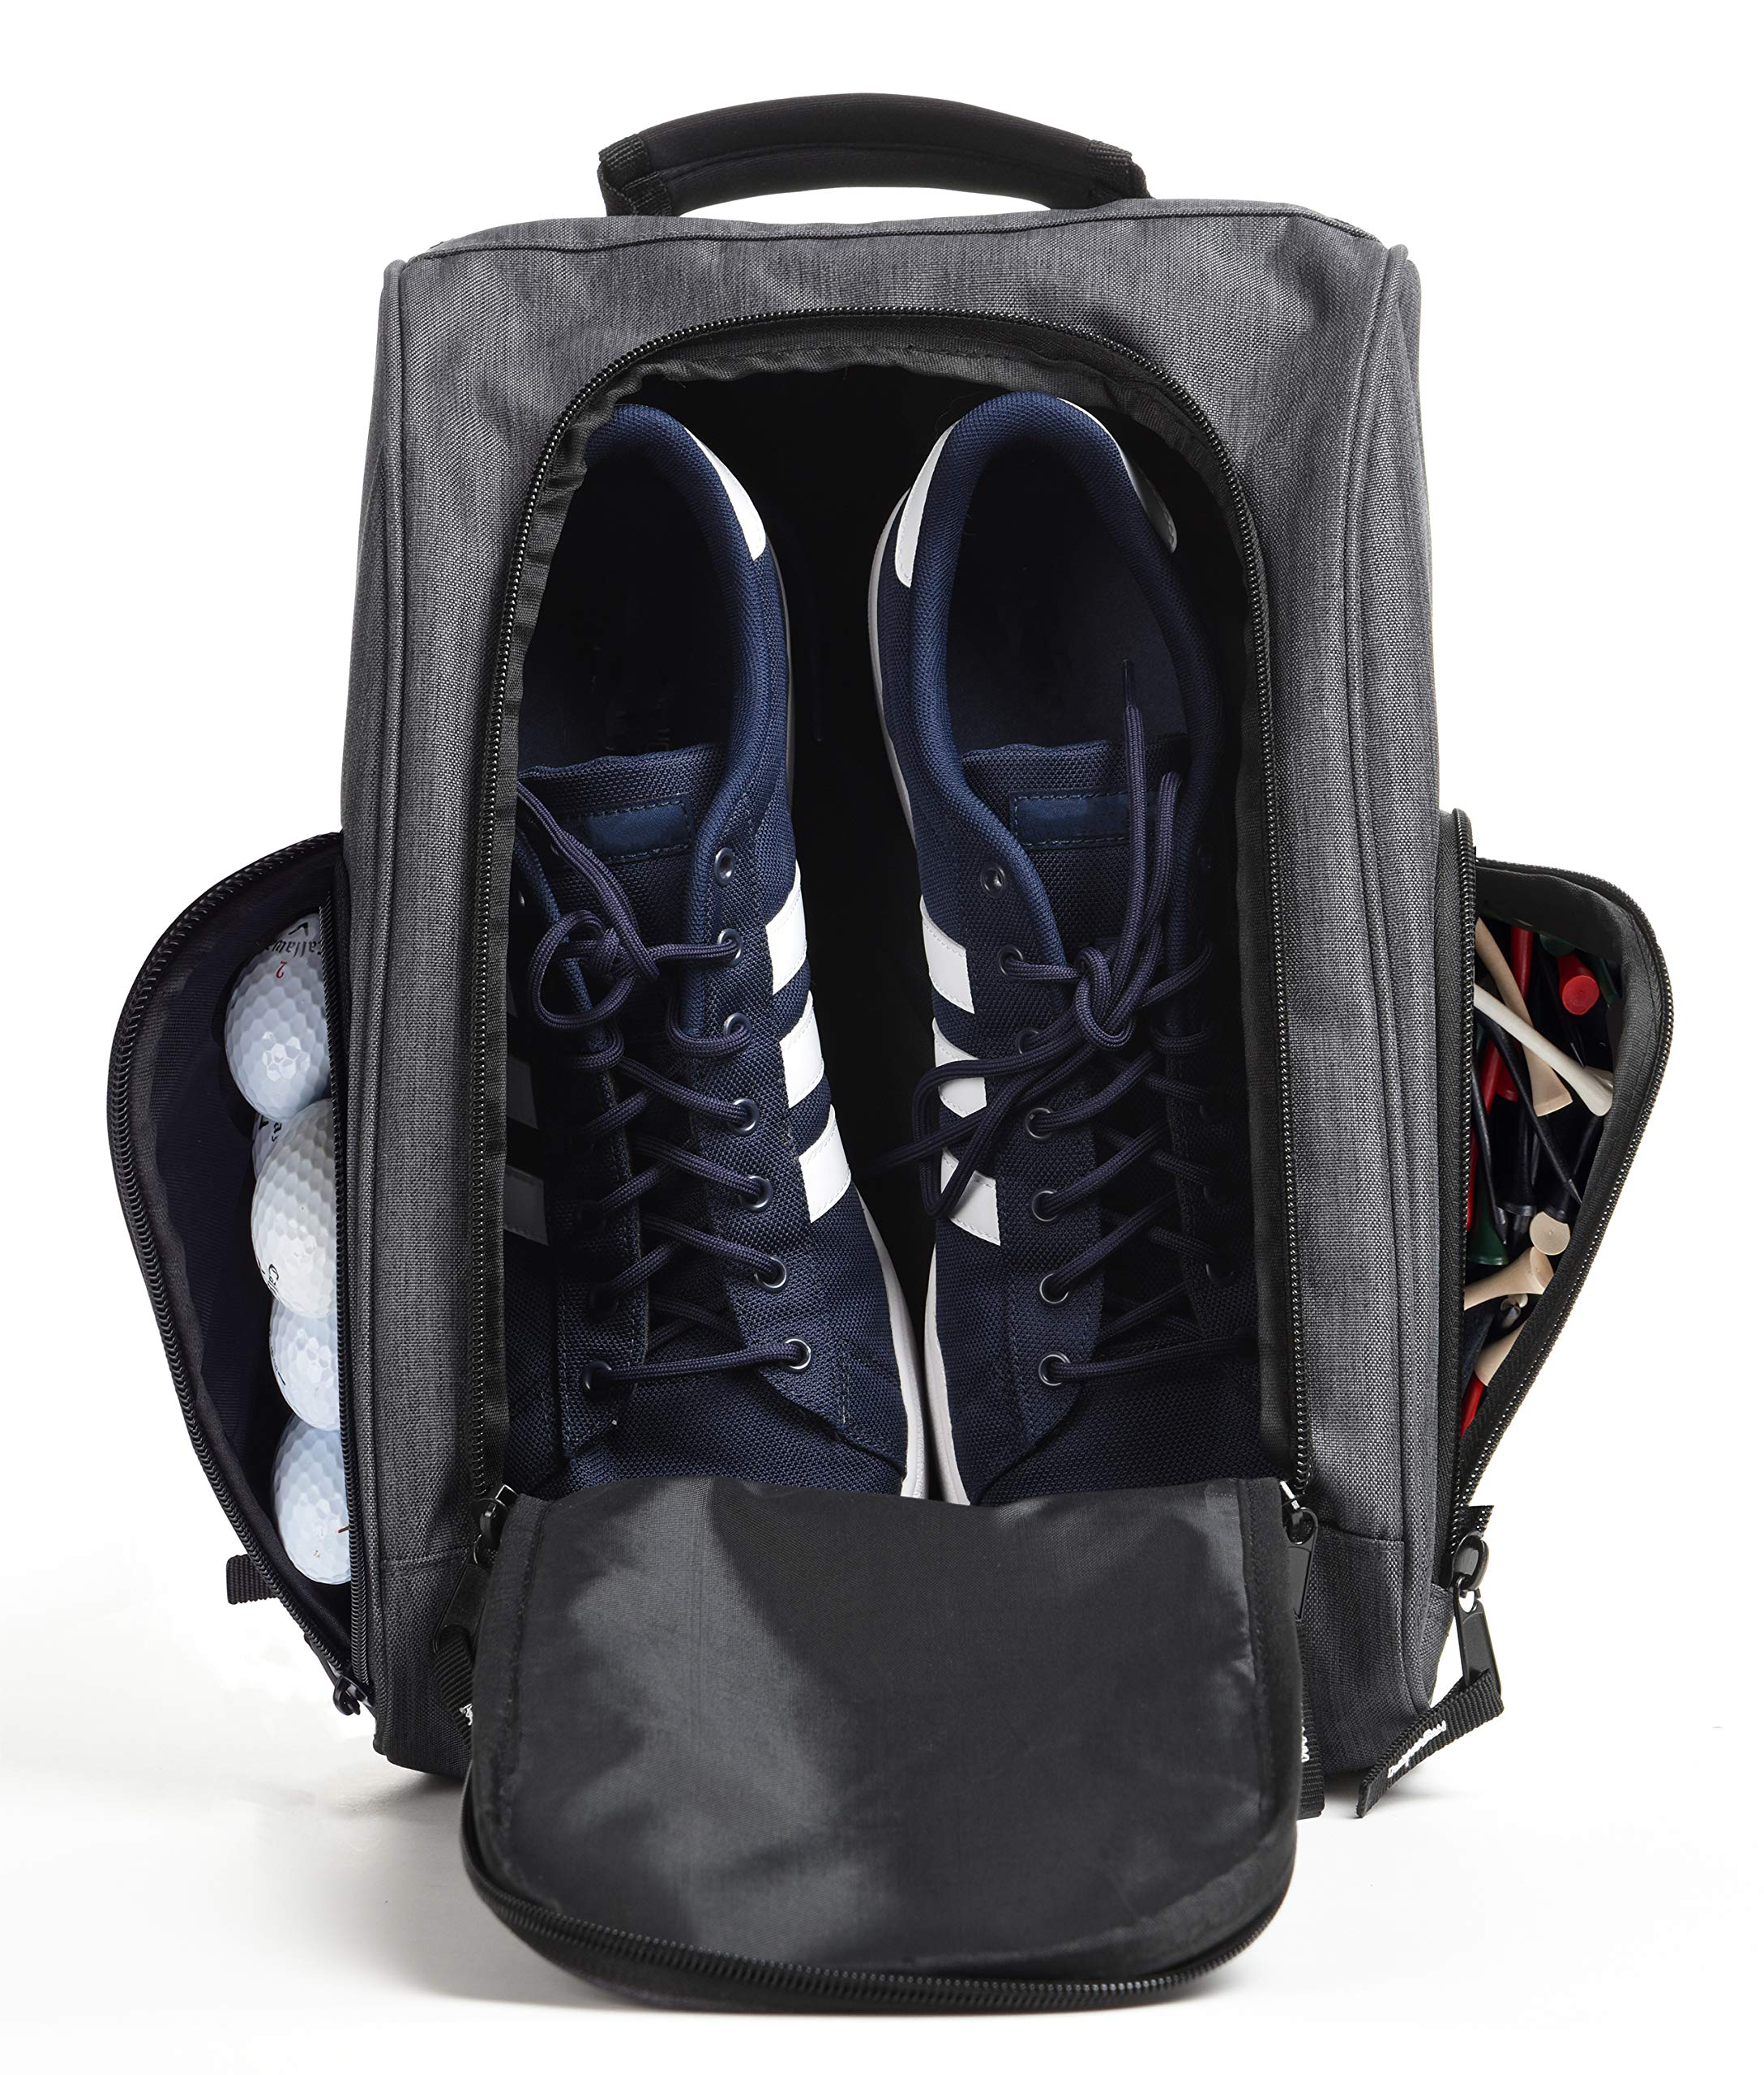 Athletico Golf Shoe Bag - Zippered Shoe Carrier Bags with Ventilation & Outside Pocket for Socks, Tees, etc. (Gray) by Athletico